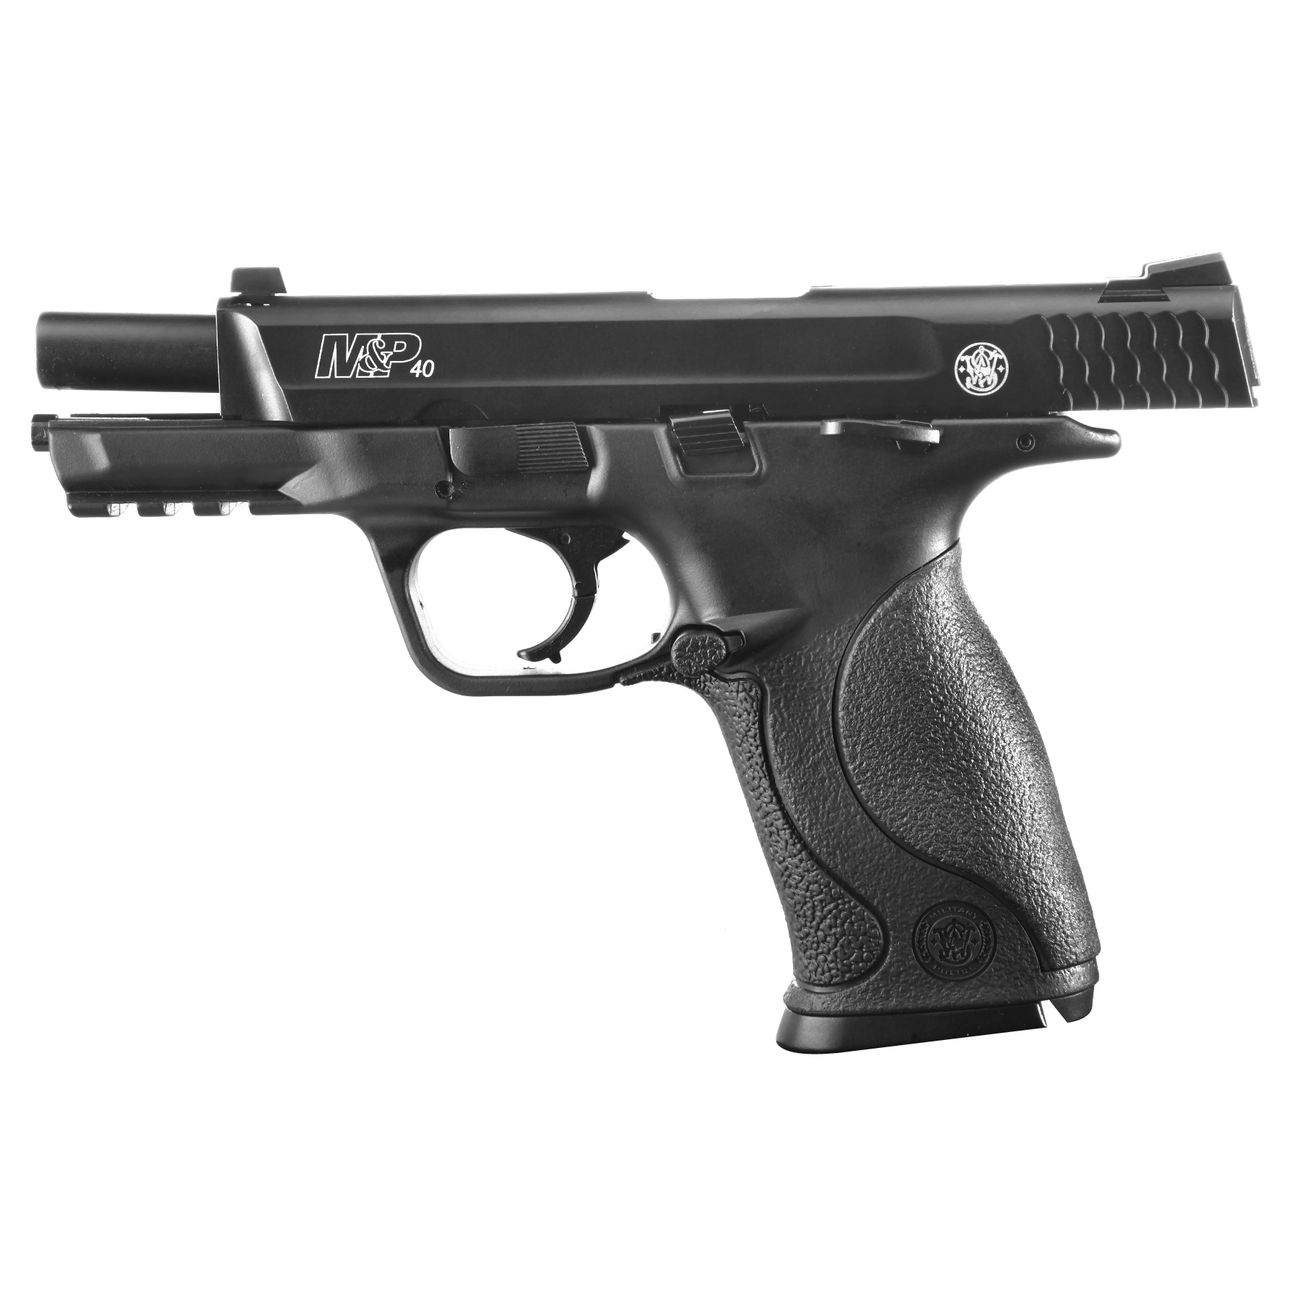 Smith & Wesson M&P40 TS CO2 Luftpistole Blow Back 4,5mm Stahl BB brüniert 5